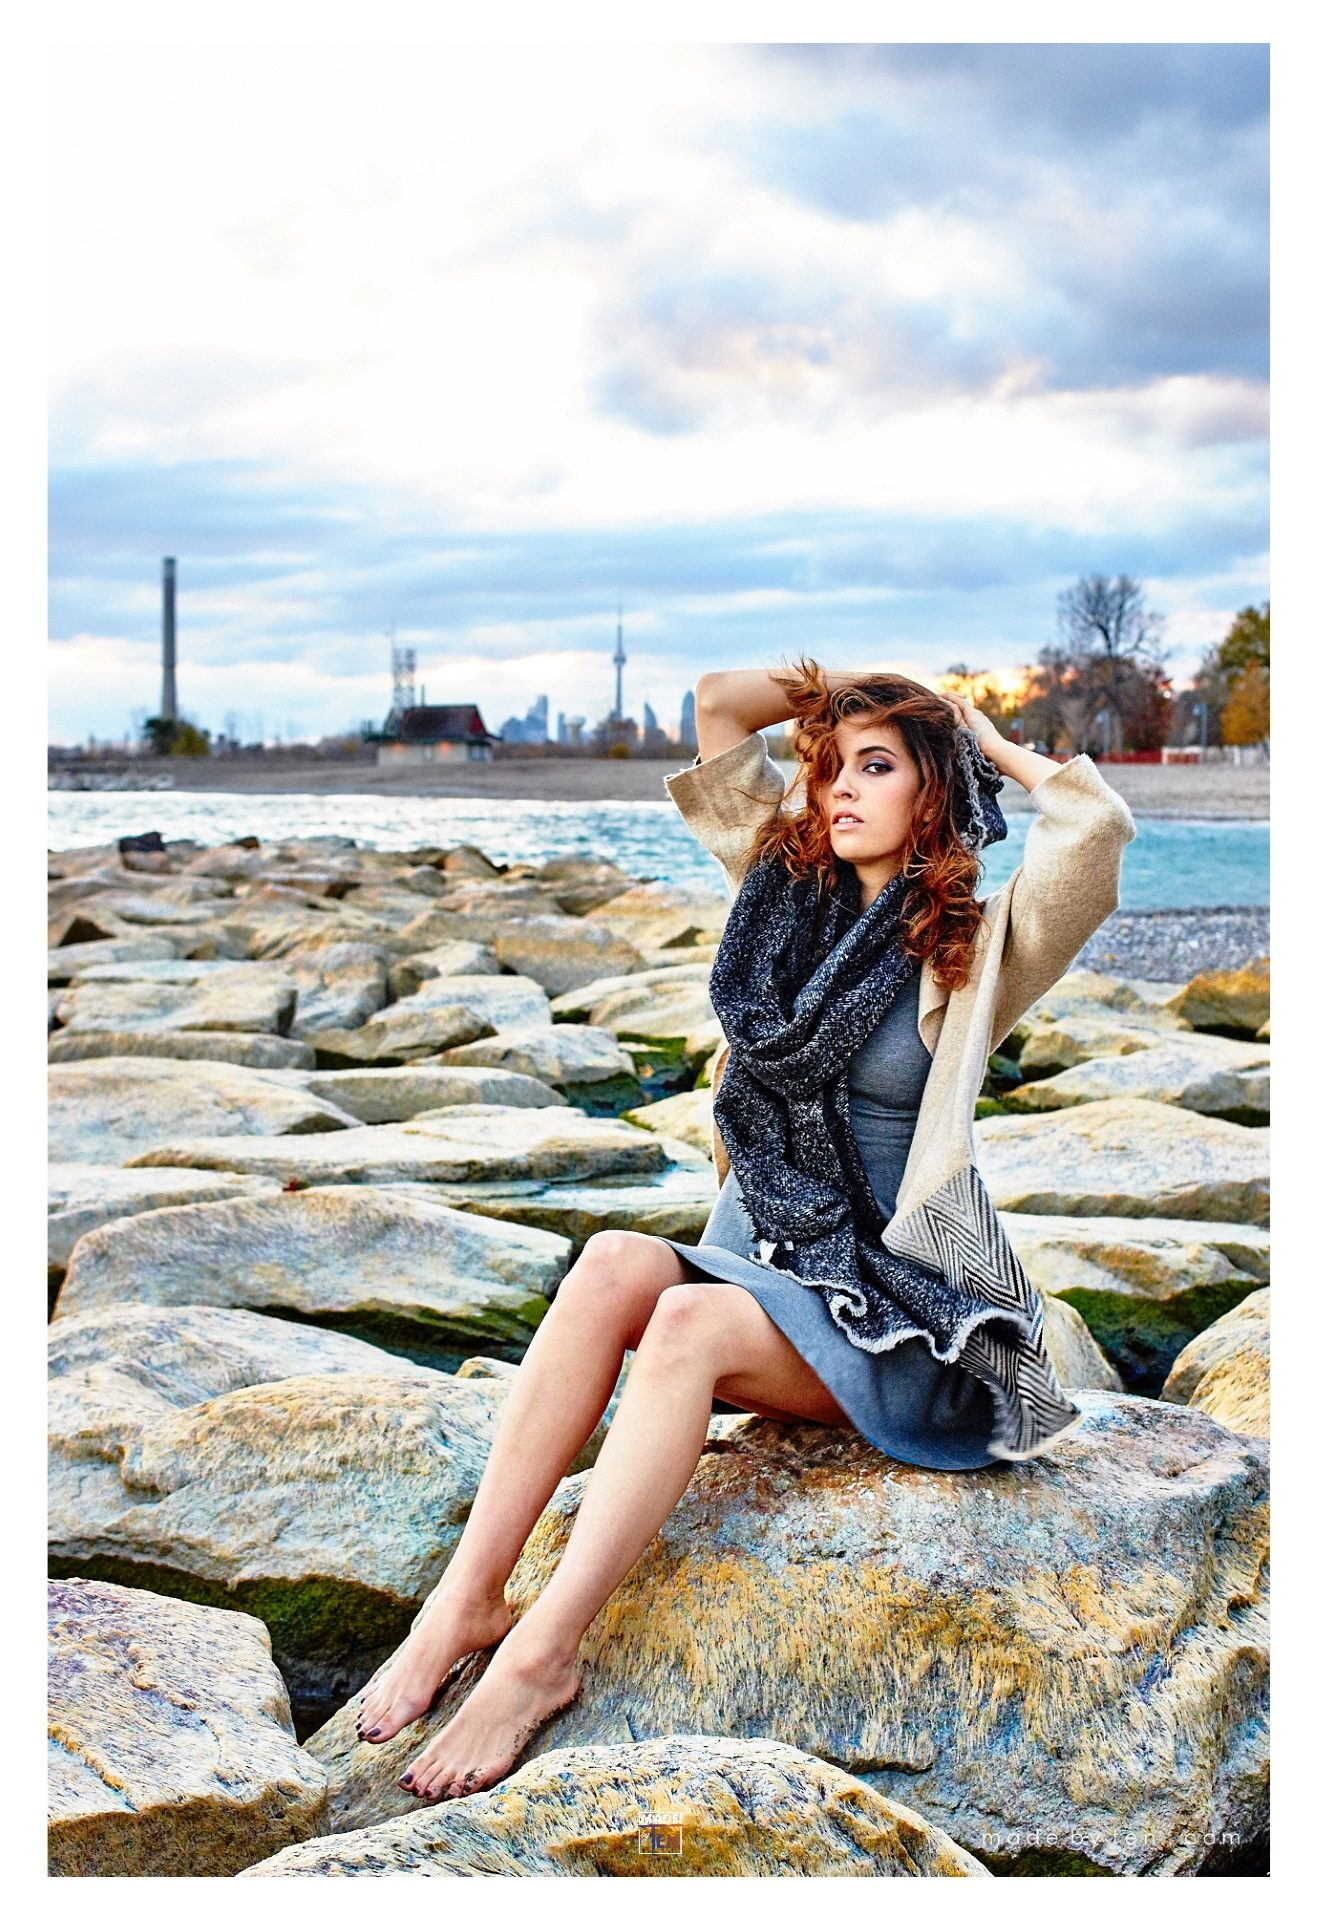 Toronto Beach Fashion Editorial - GTA Women Lifestyle Photography